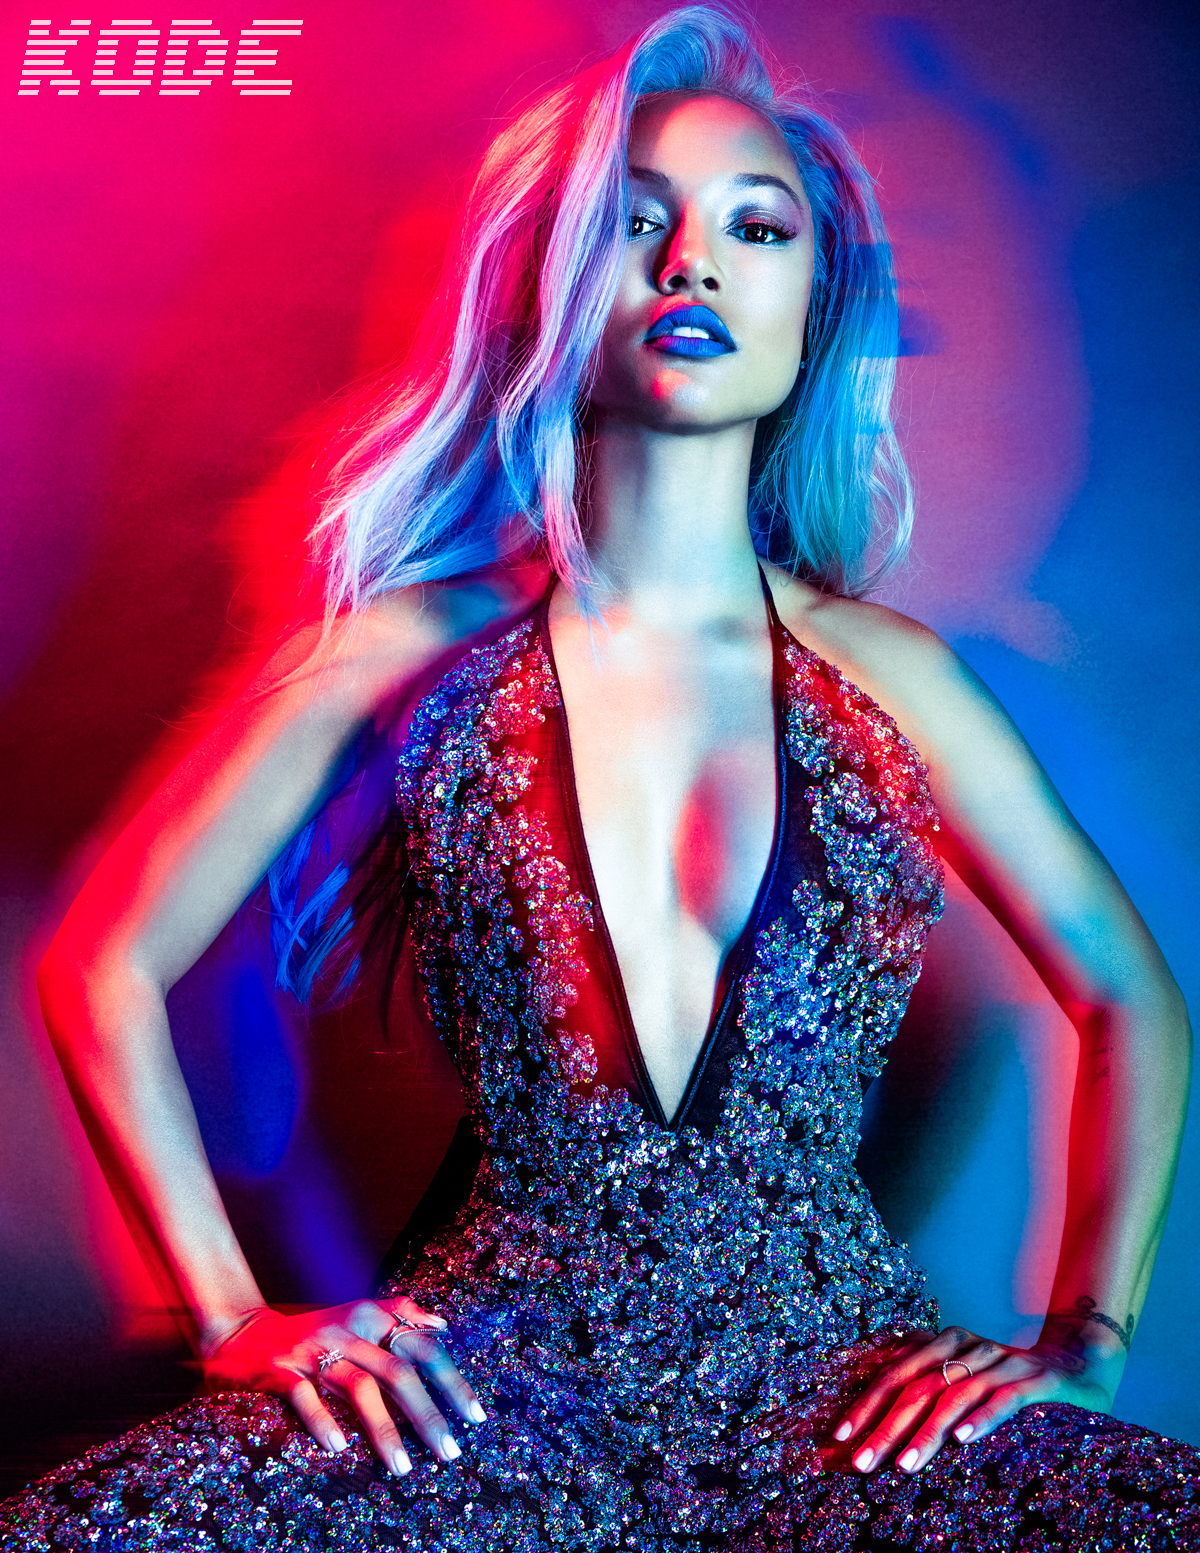 Karrueche Tran for Kode Magazine Photographed by Bradford Rogne 2016-0001_Tear.jpg